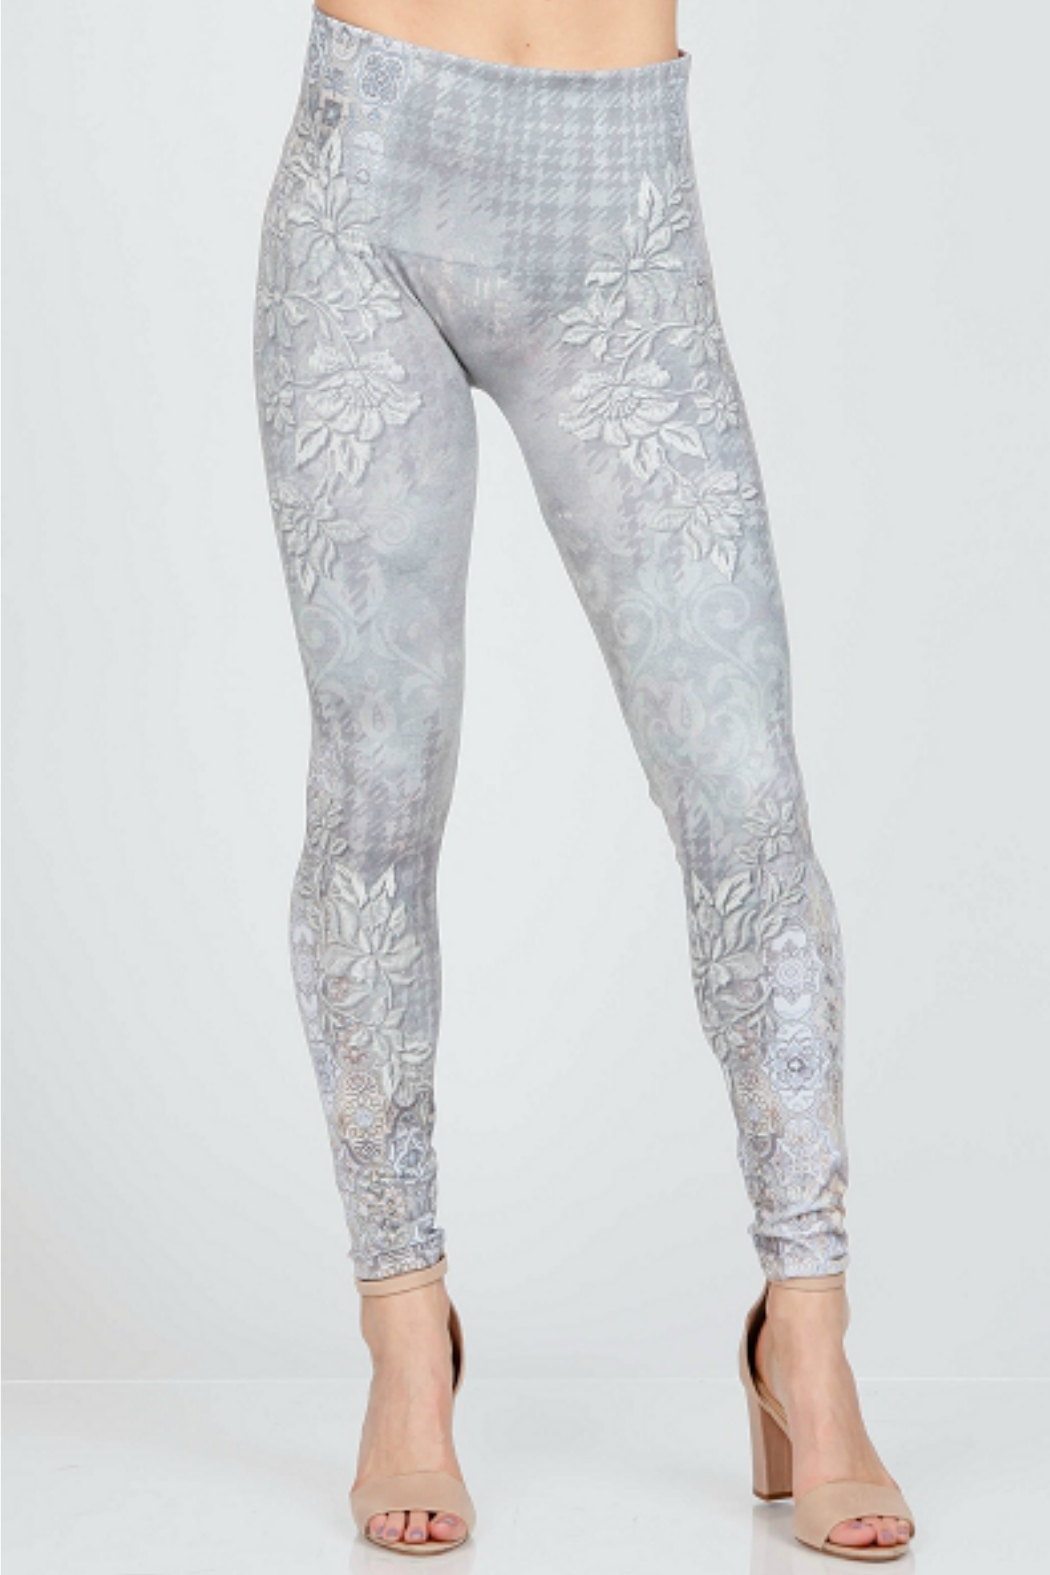 M. Rena High Waist Valentina Legging - Front Cropped Image